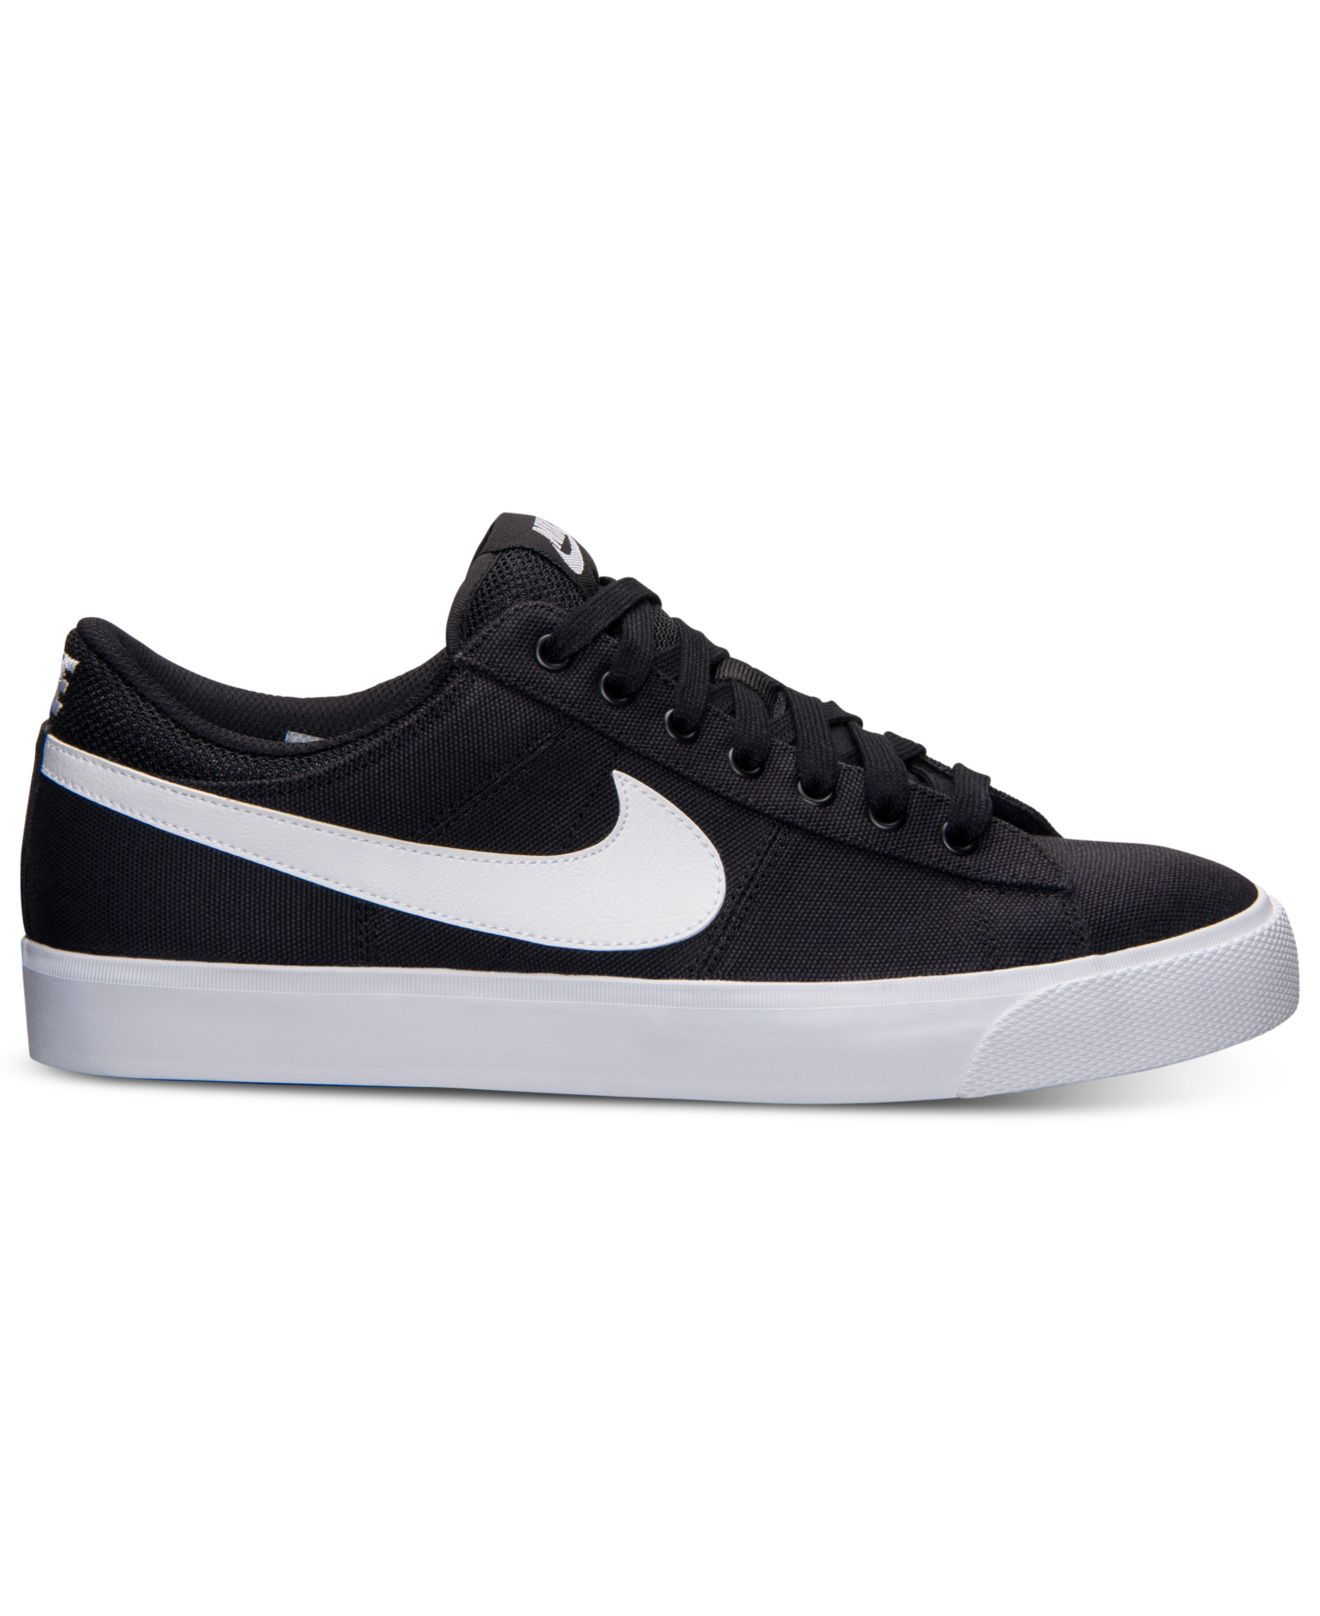 Lyst - Nike Men'S Match Supreme Hi Textile Casual Sneakers ...